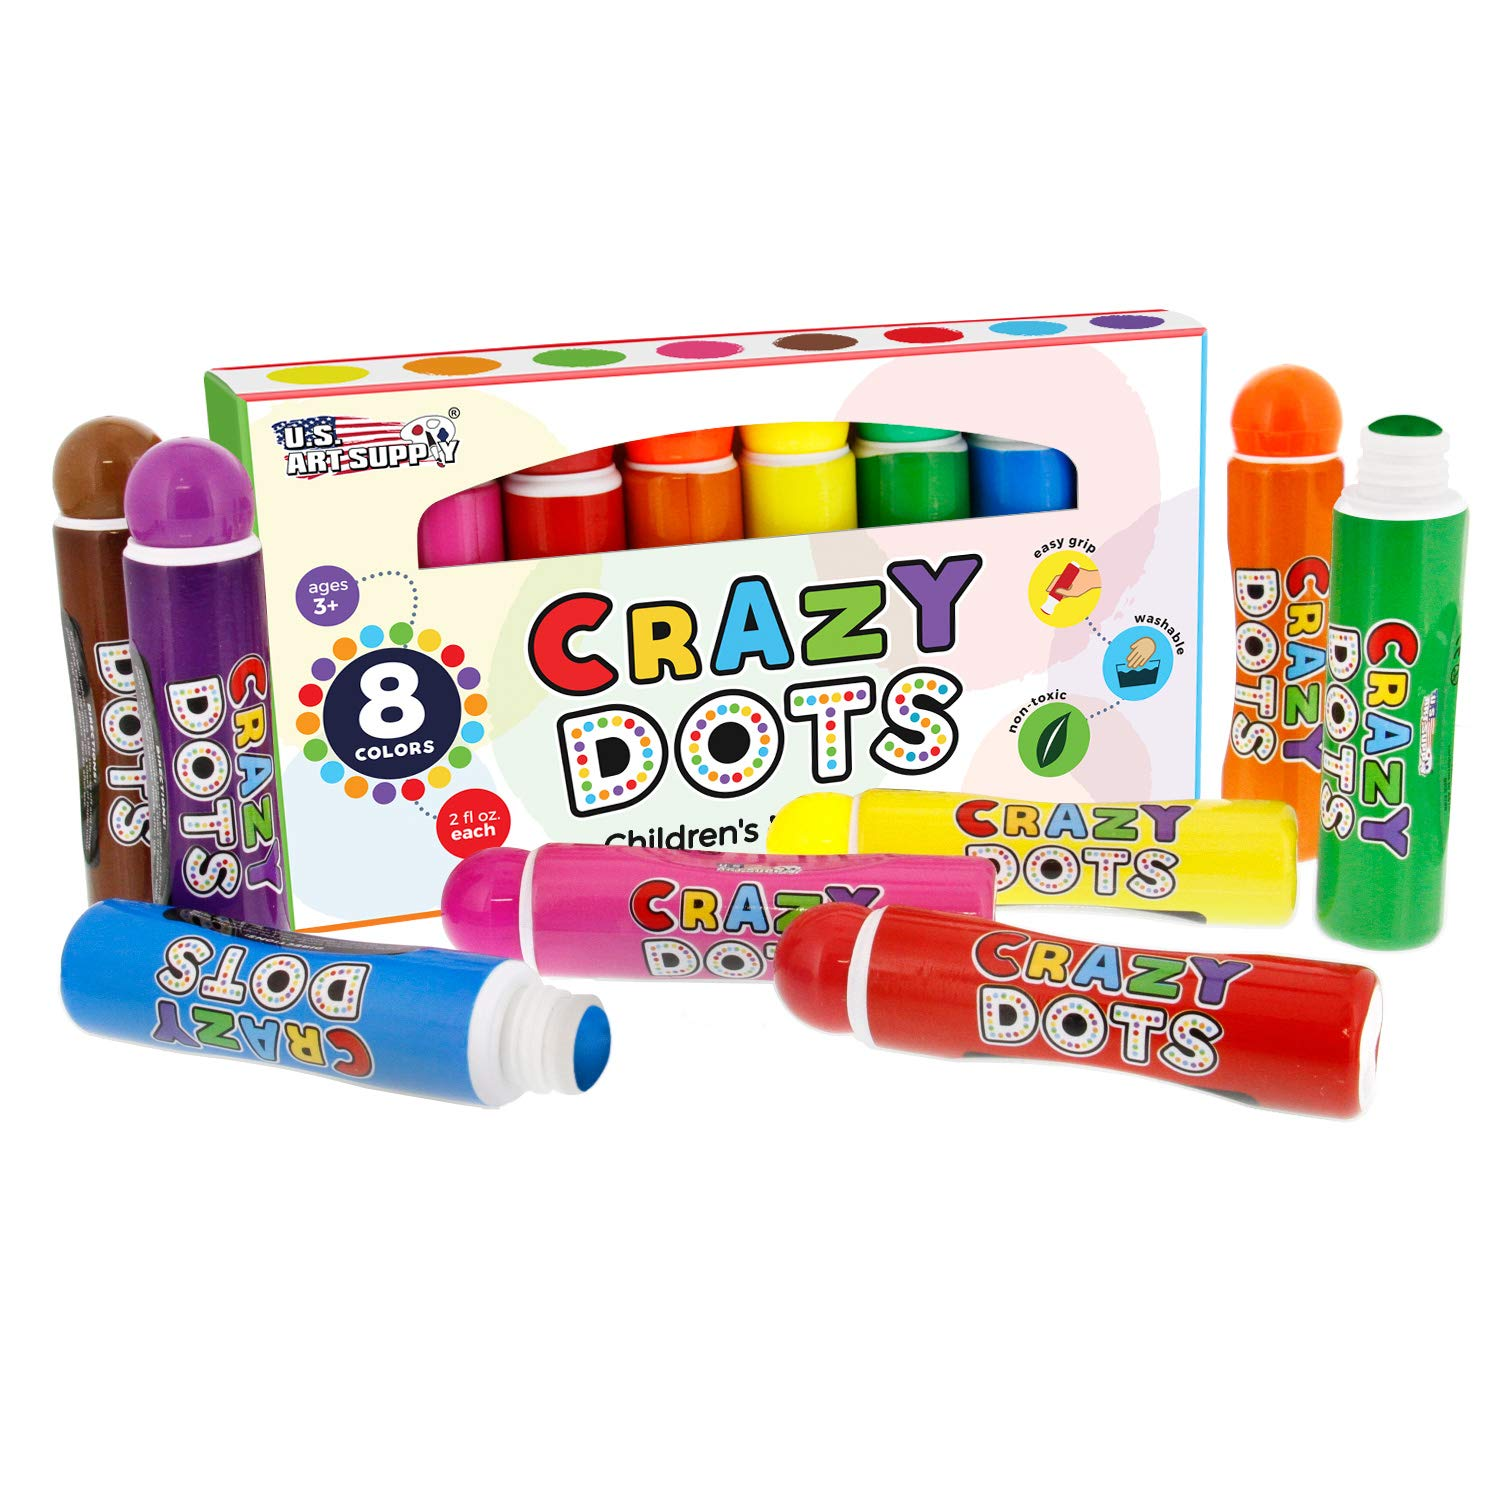 U.S. Art Supply 8 Color Crazy Dots Markers - Children's Washable Easy Grip Non-Toxic Paint Marker Daubers by US Art Supply